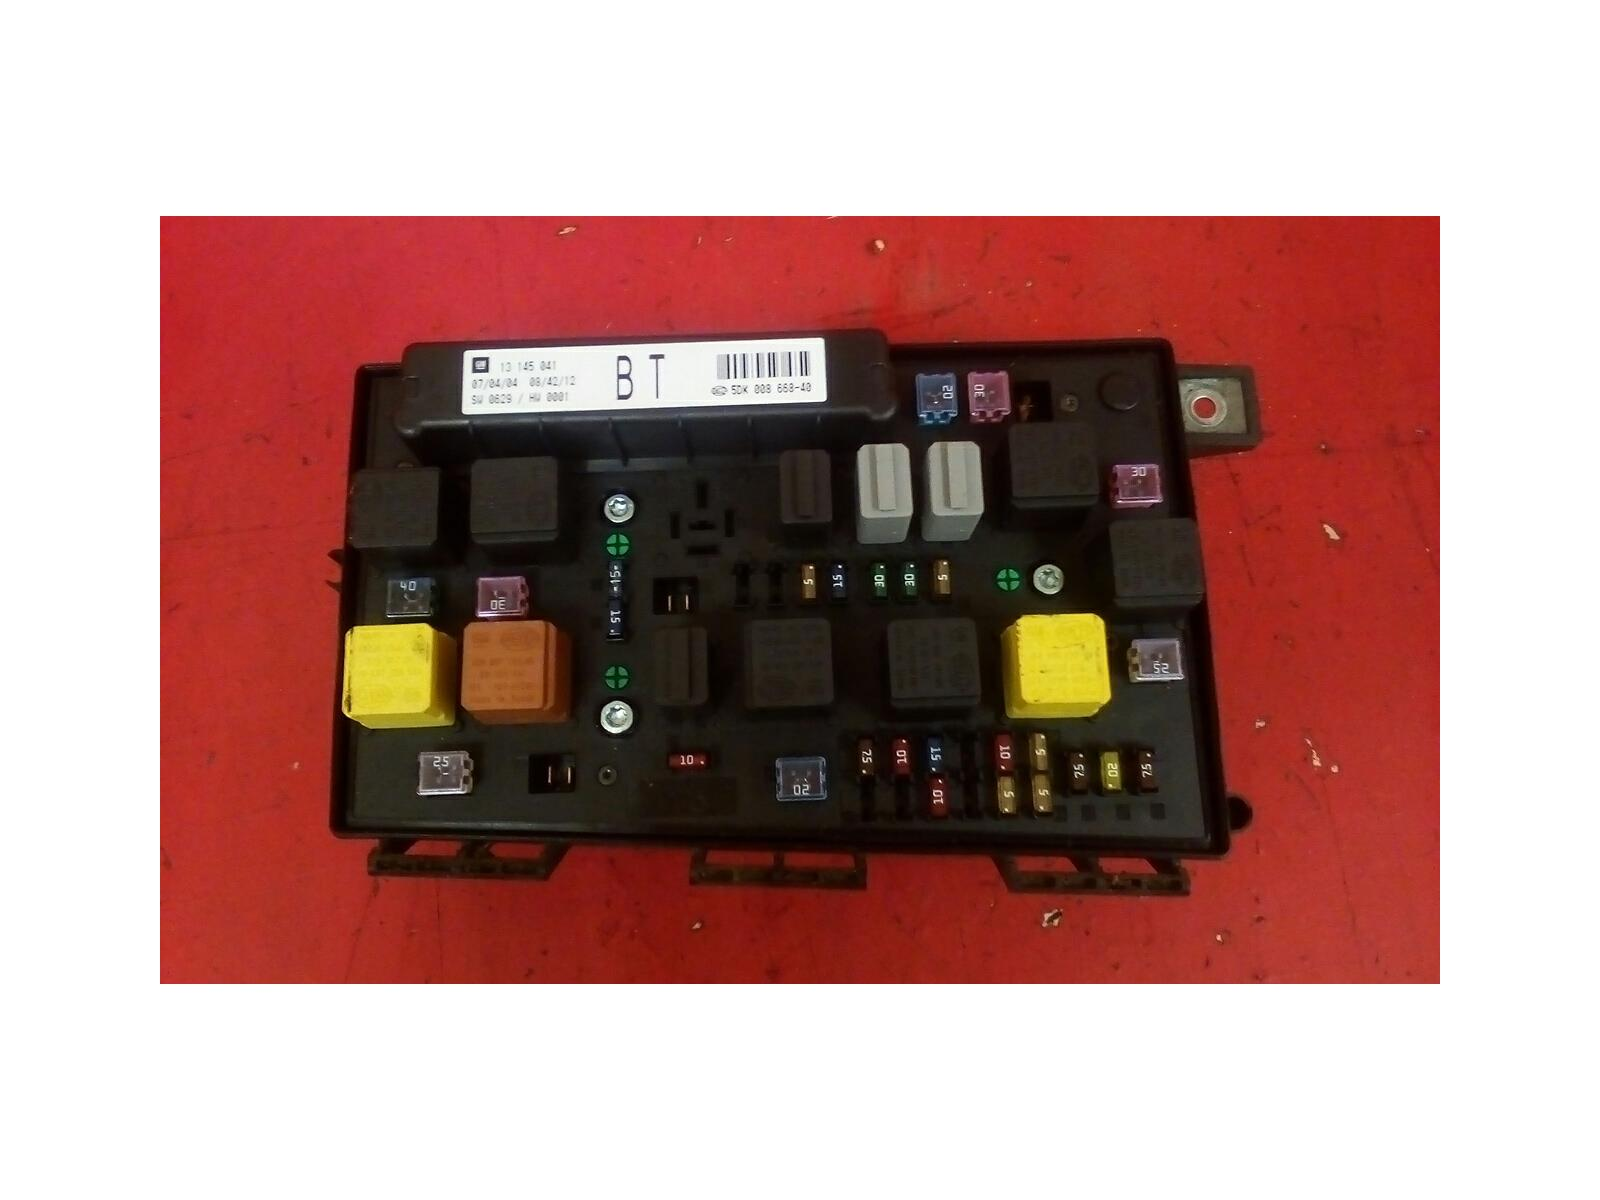 VAUXHALL ASTRA H MK5 FRONT BCM UEC BT ELECTRIC CONTROL FUSE BOX 2004-2010